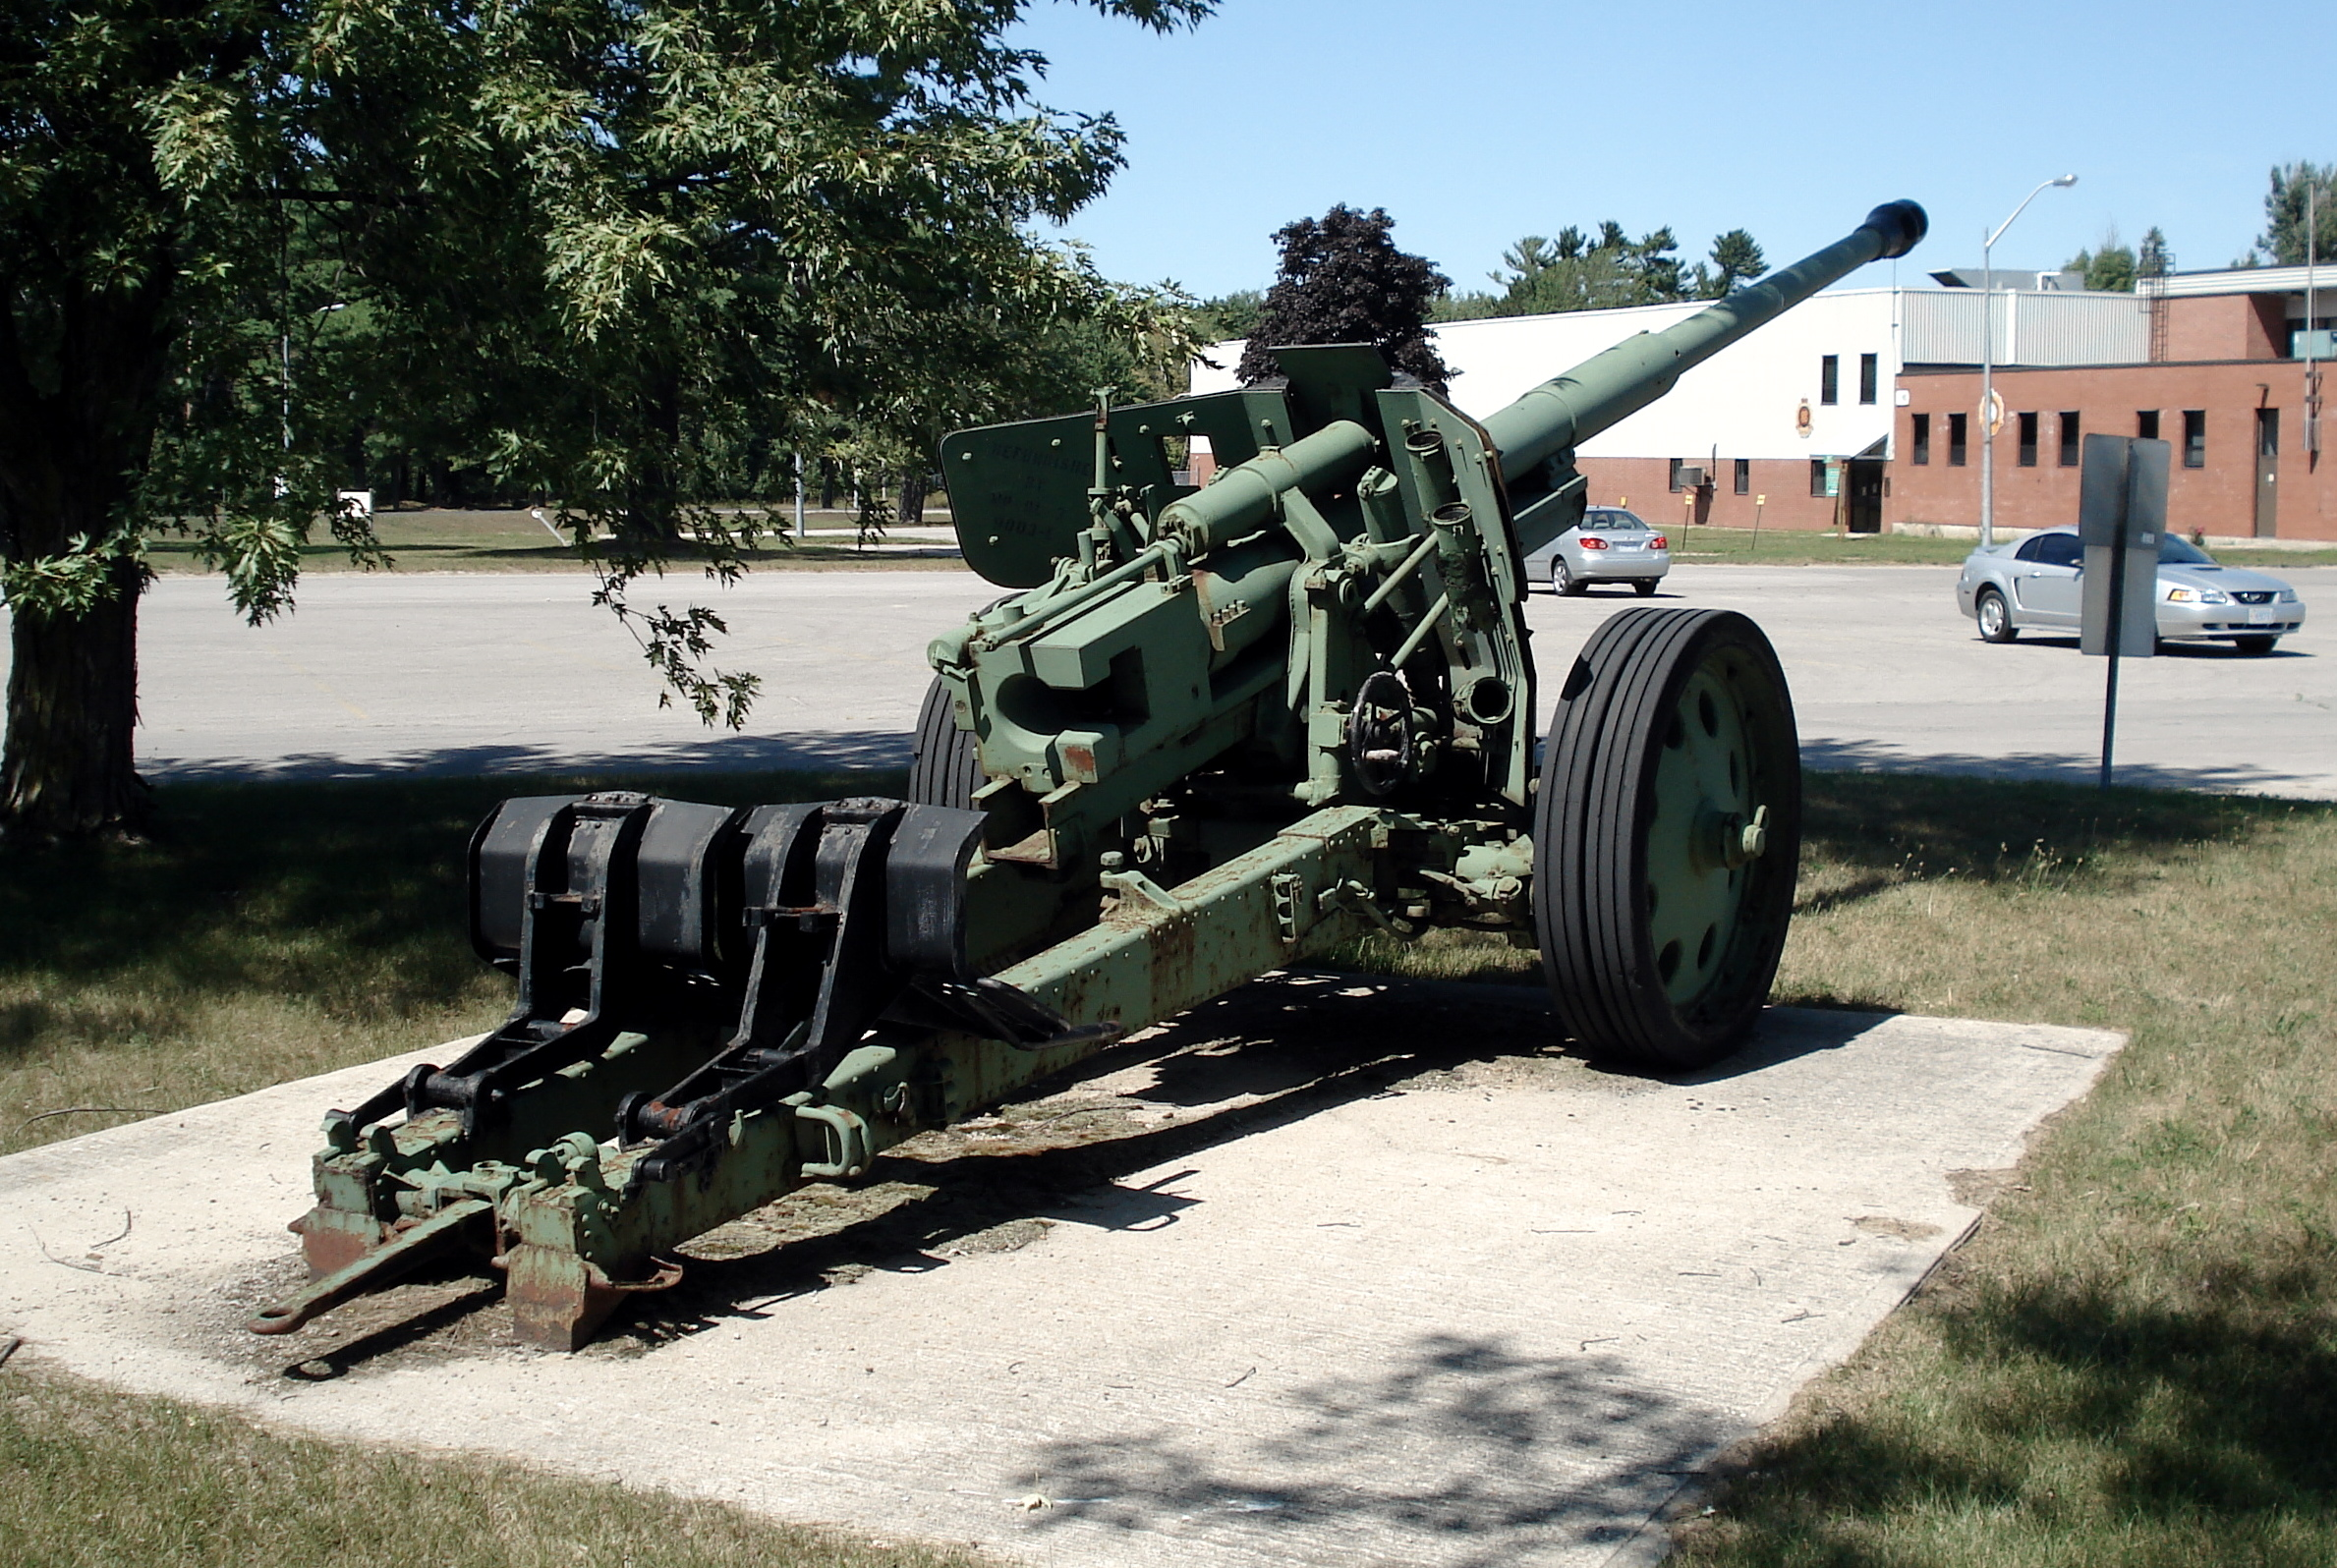 File:PaK43-41 base borden military museum 6 jpg - Wikimedia